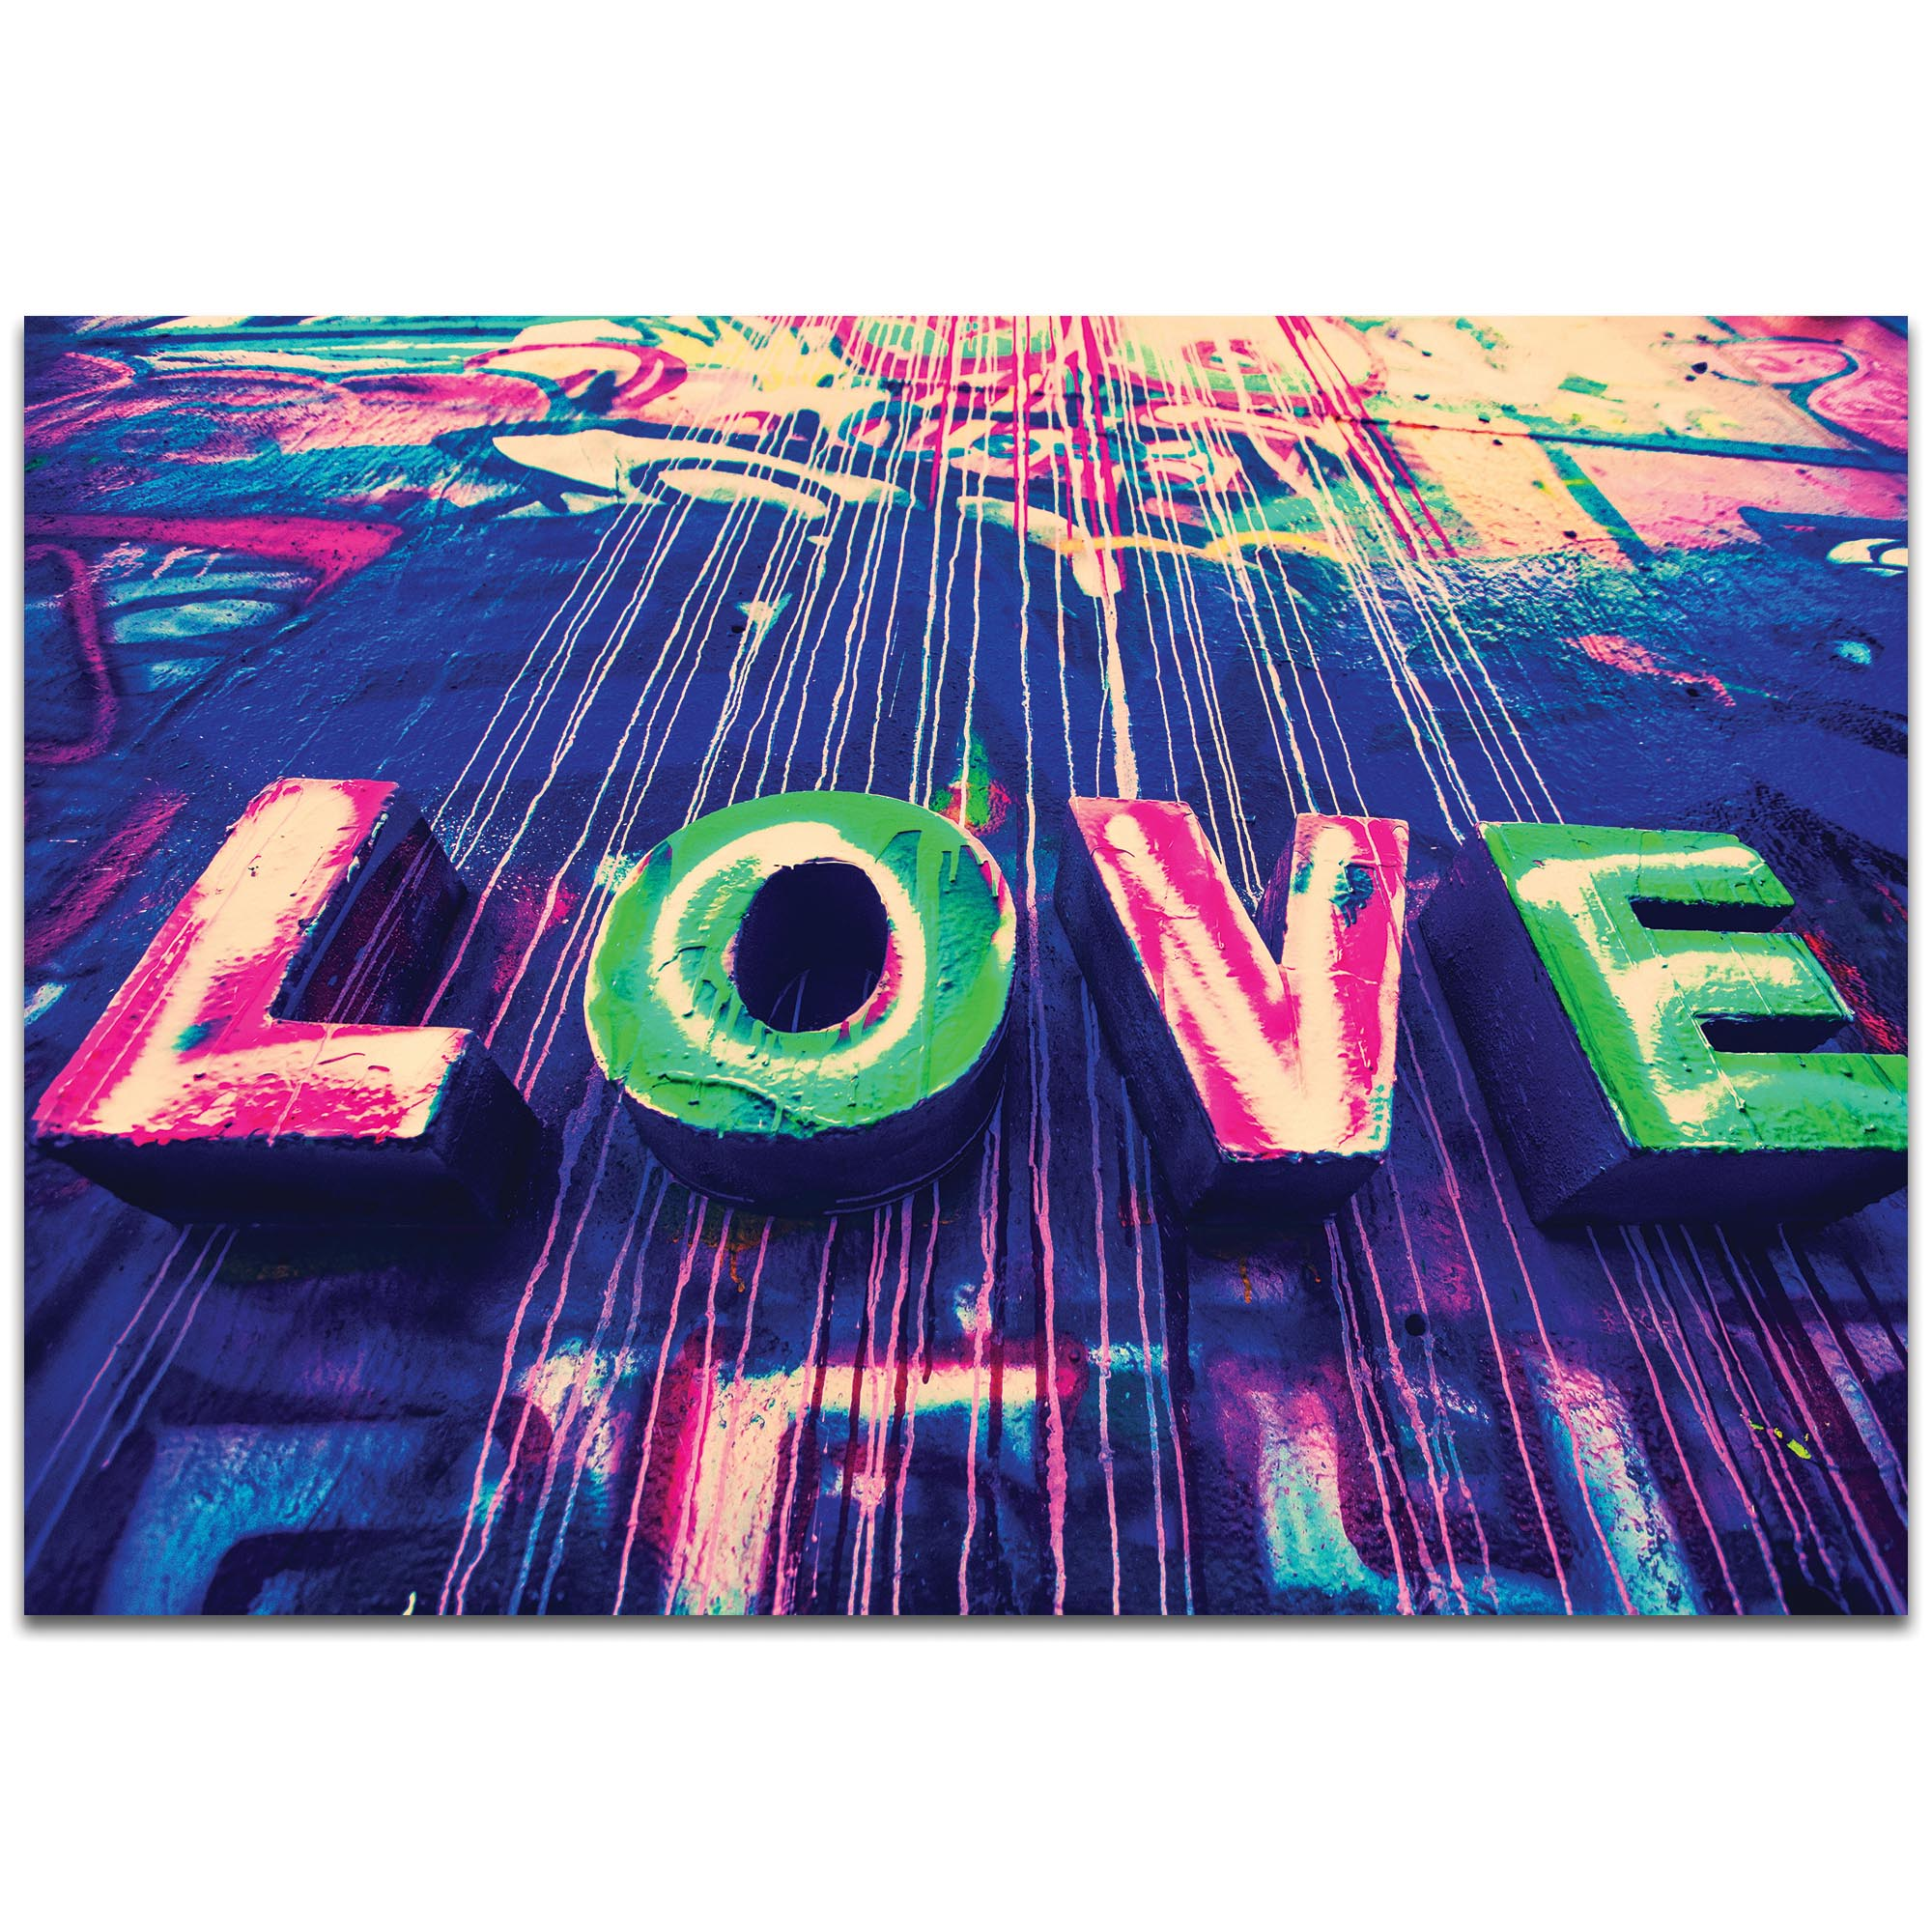 Eclectic Wall Art 'Urban Love' - New Orleans Decor on Metal or Plexiglass